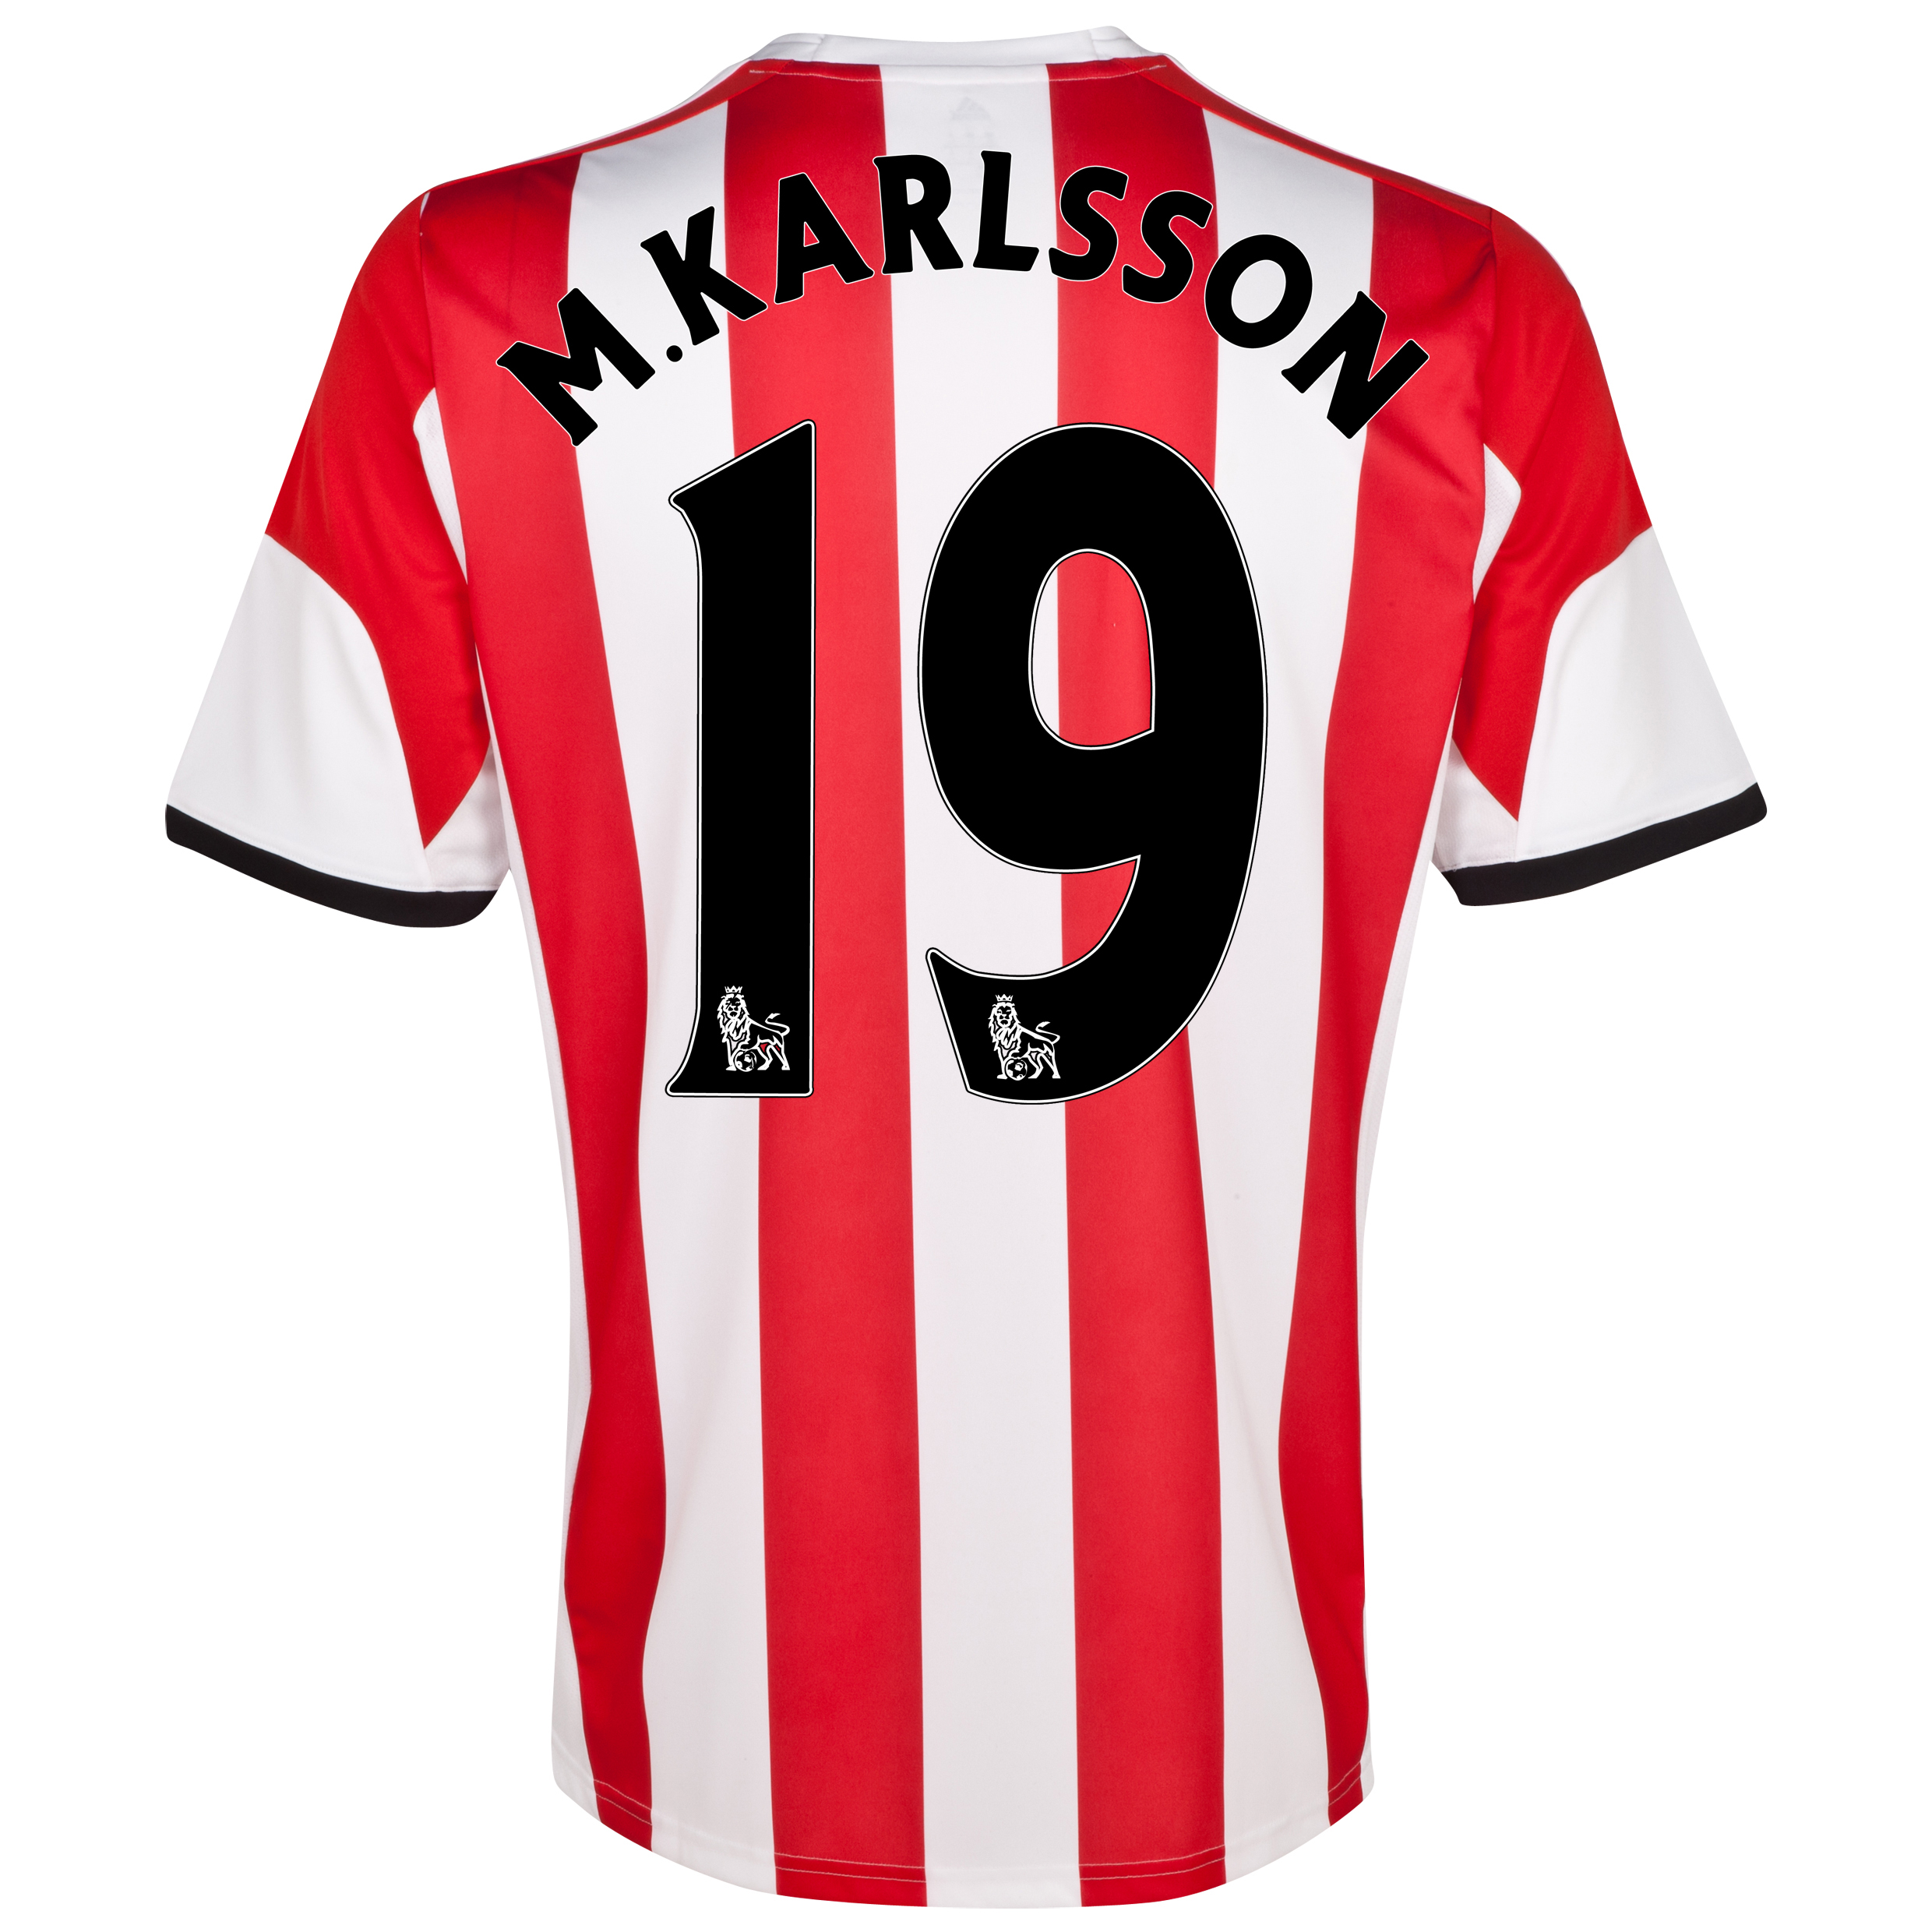 Sunderland Home Shirt 2013/14 - Junior with M.Karlsson 19 printing